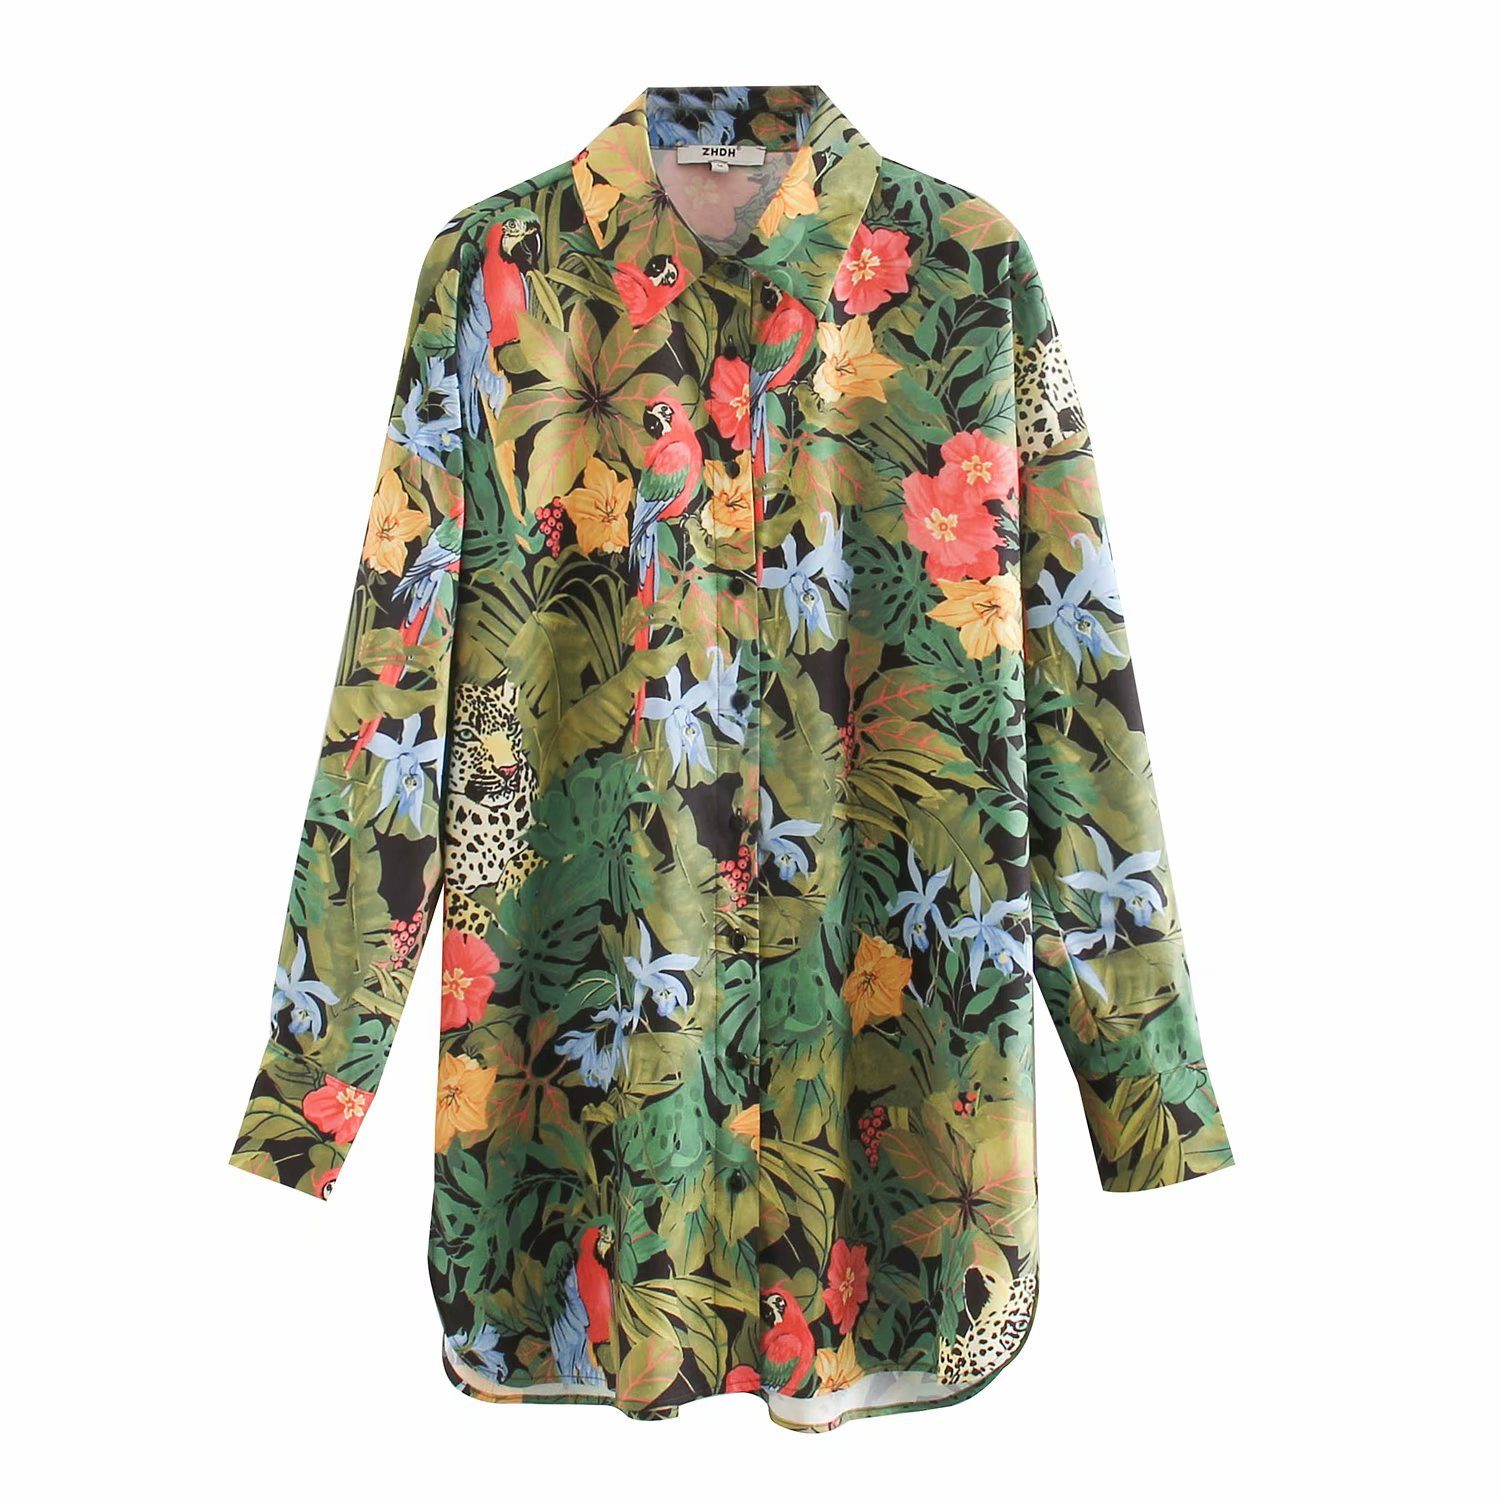 2020 Spring Summer New Grand Prix Loose Long Zaraing Women Blouse Shirt Sheining Vadiming Female Ladies Plus Size Shirt XDN9533